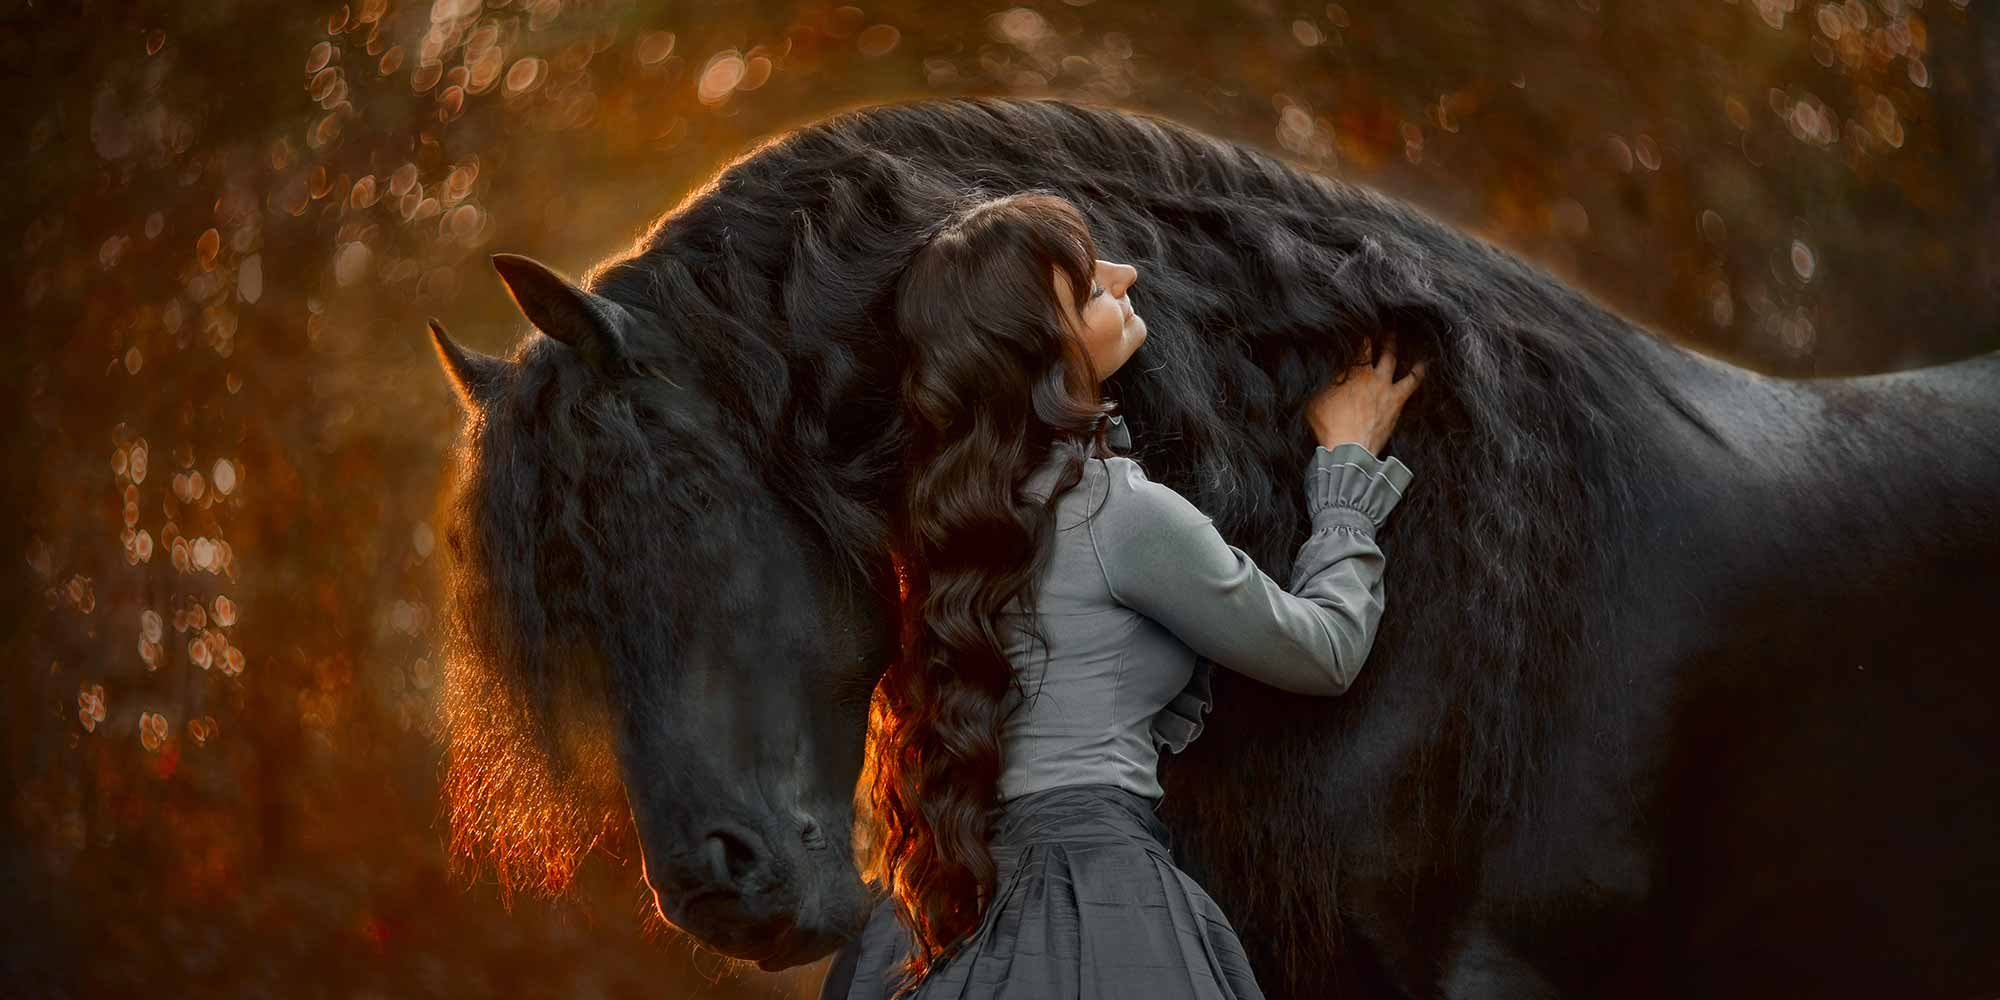 EQ Graphics | Sunset Photography Taken of a Friesian Horse and a Girl